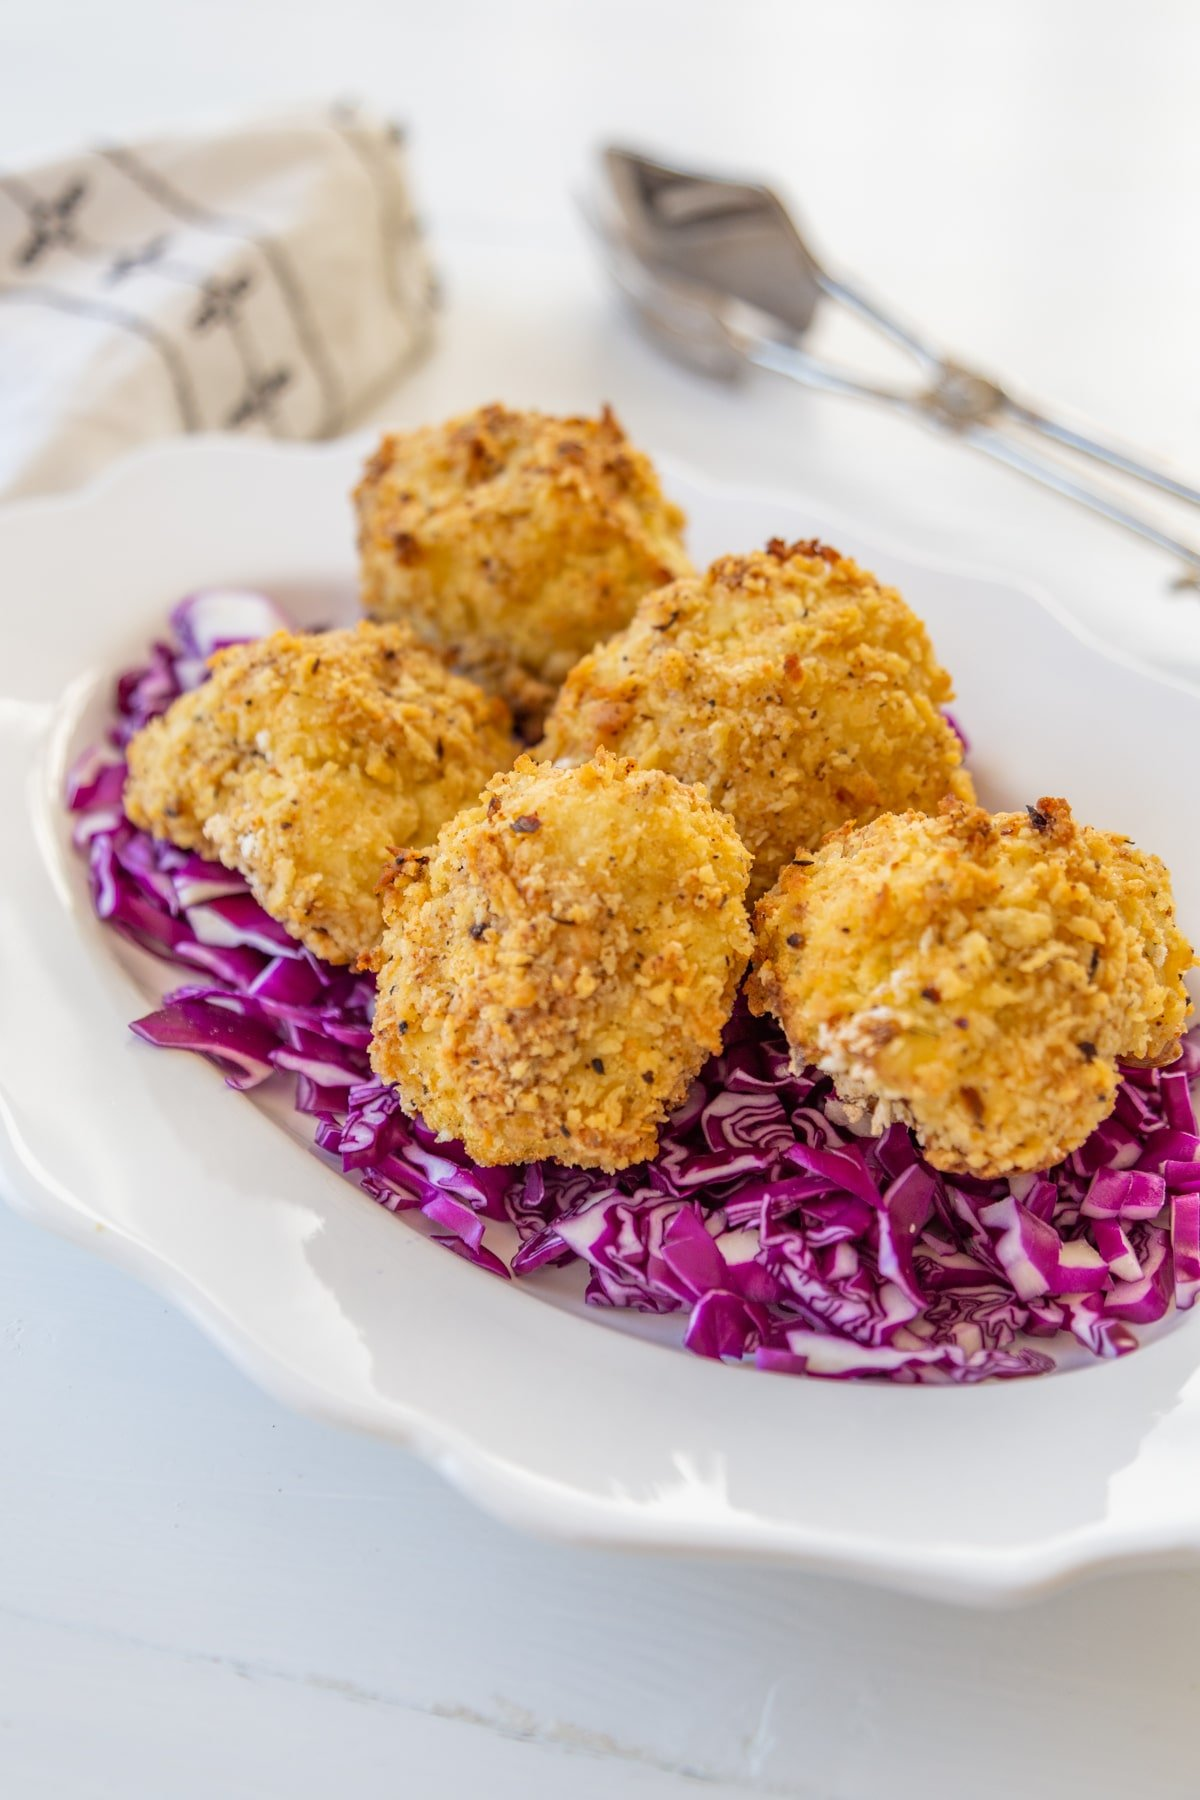 A white scalloped edge plate with a bed or chopped red cabbage with crispy cauliflower on top.